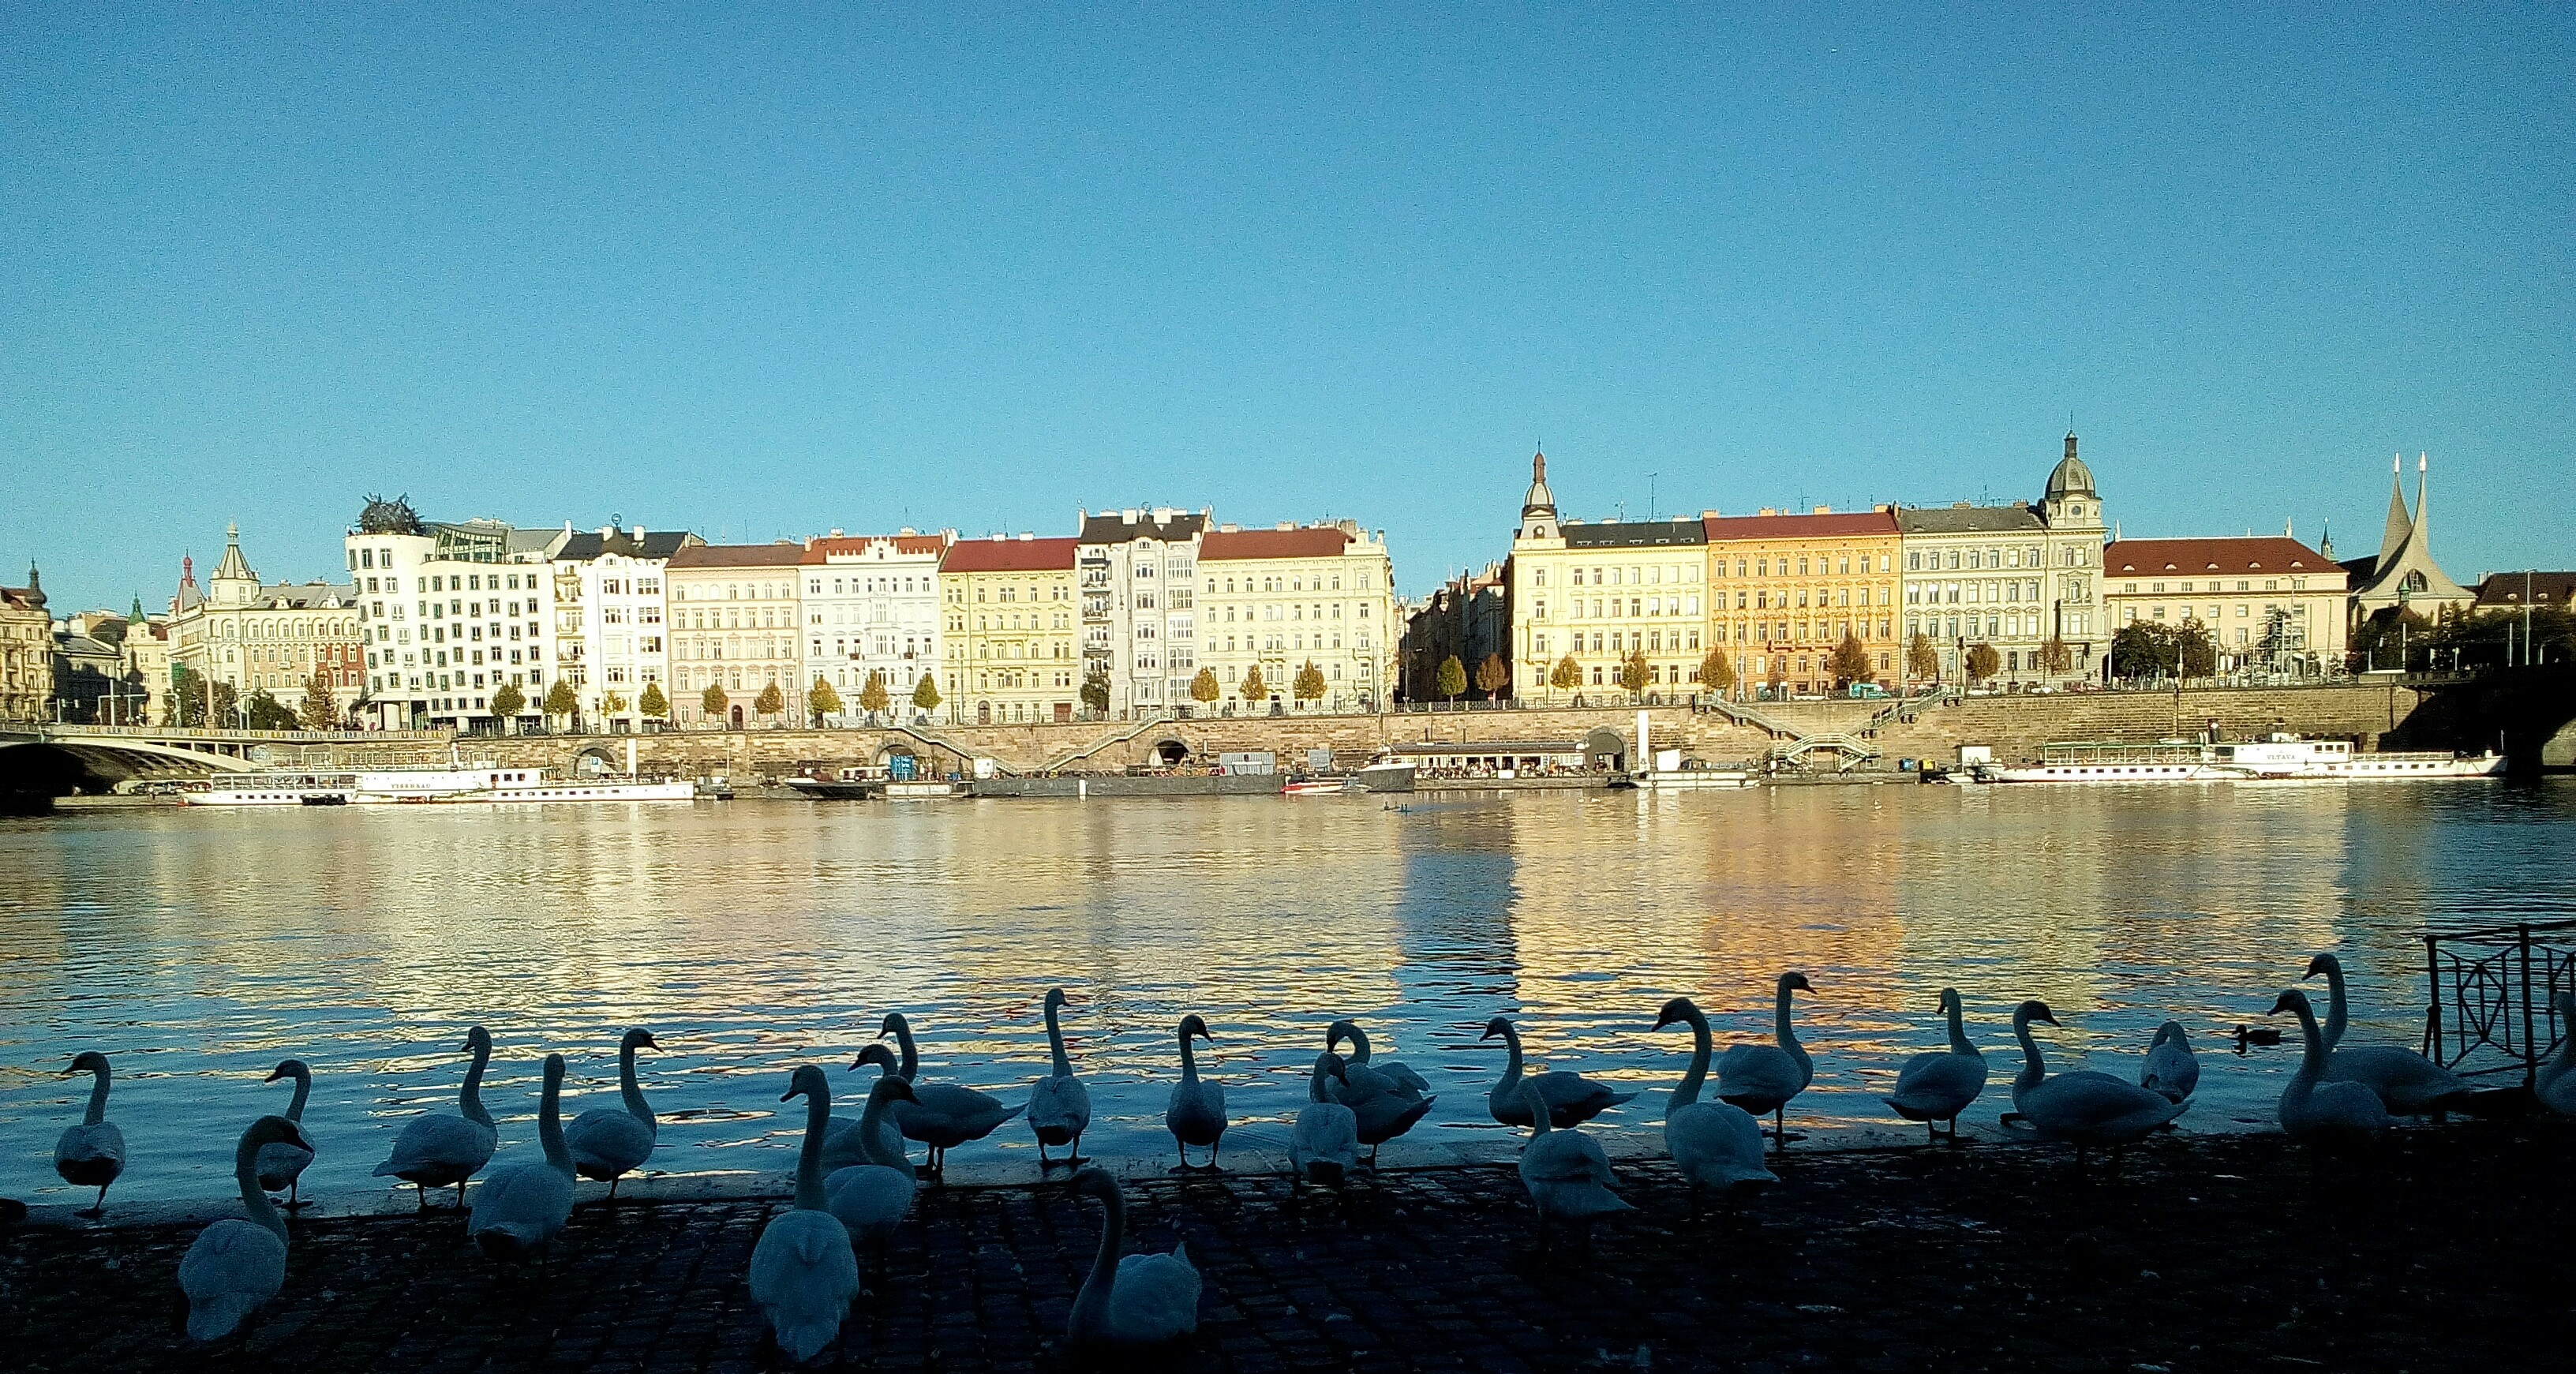 swans of prague